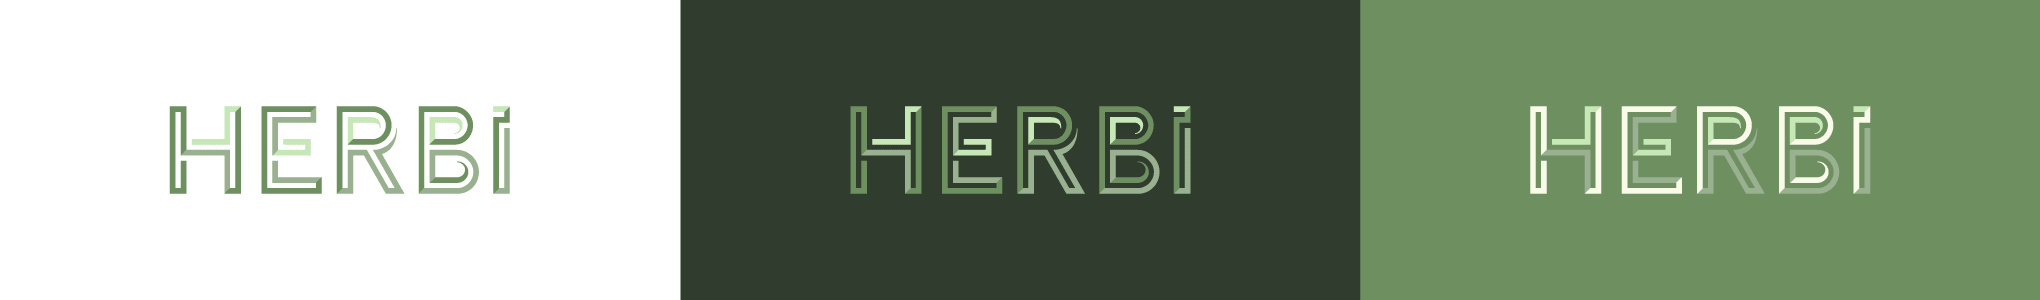 HERBi logo on different backgrounds